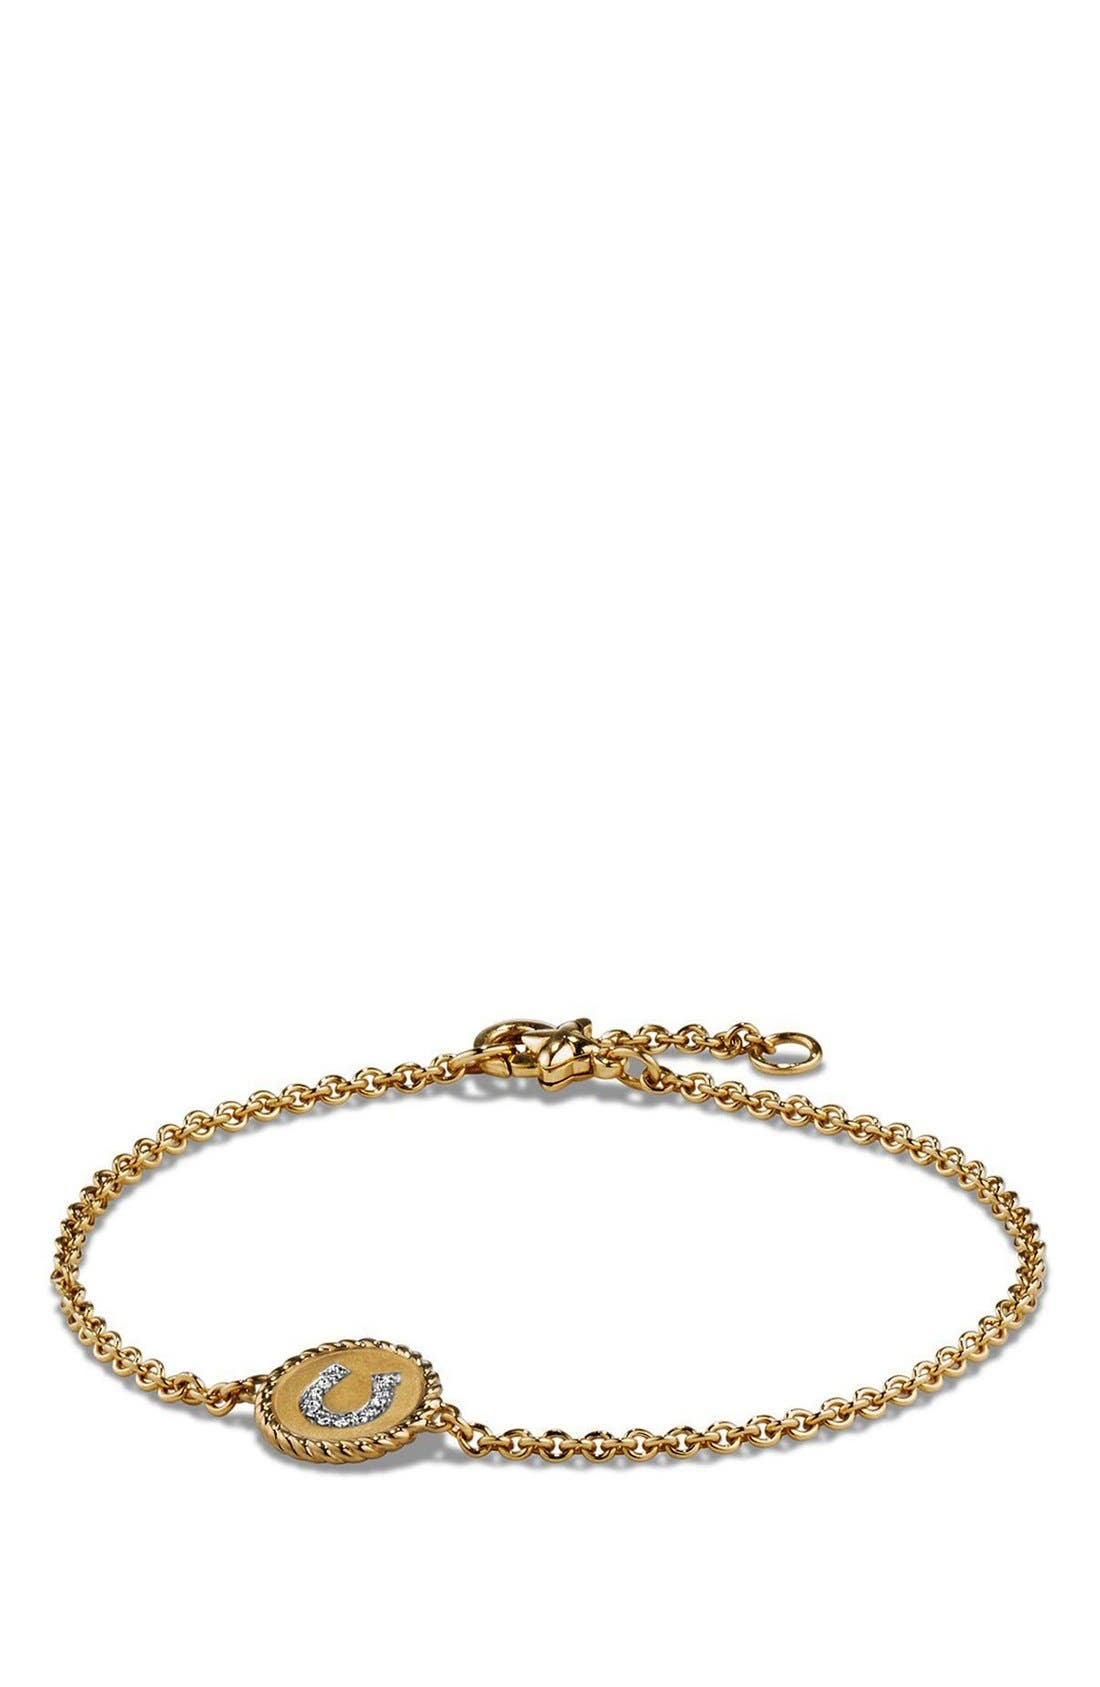 David Yurman 'Petite Pavé' Horseshoe Bracelet with Diamonds in 18K Gold